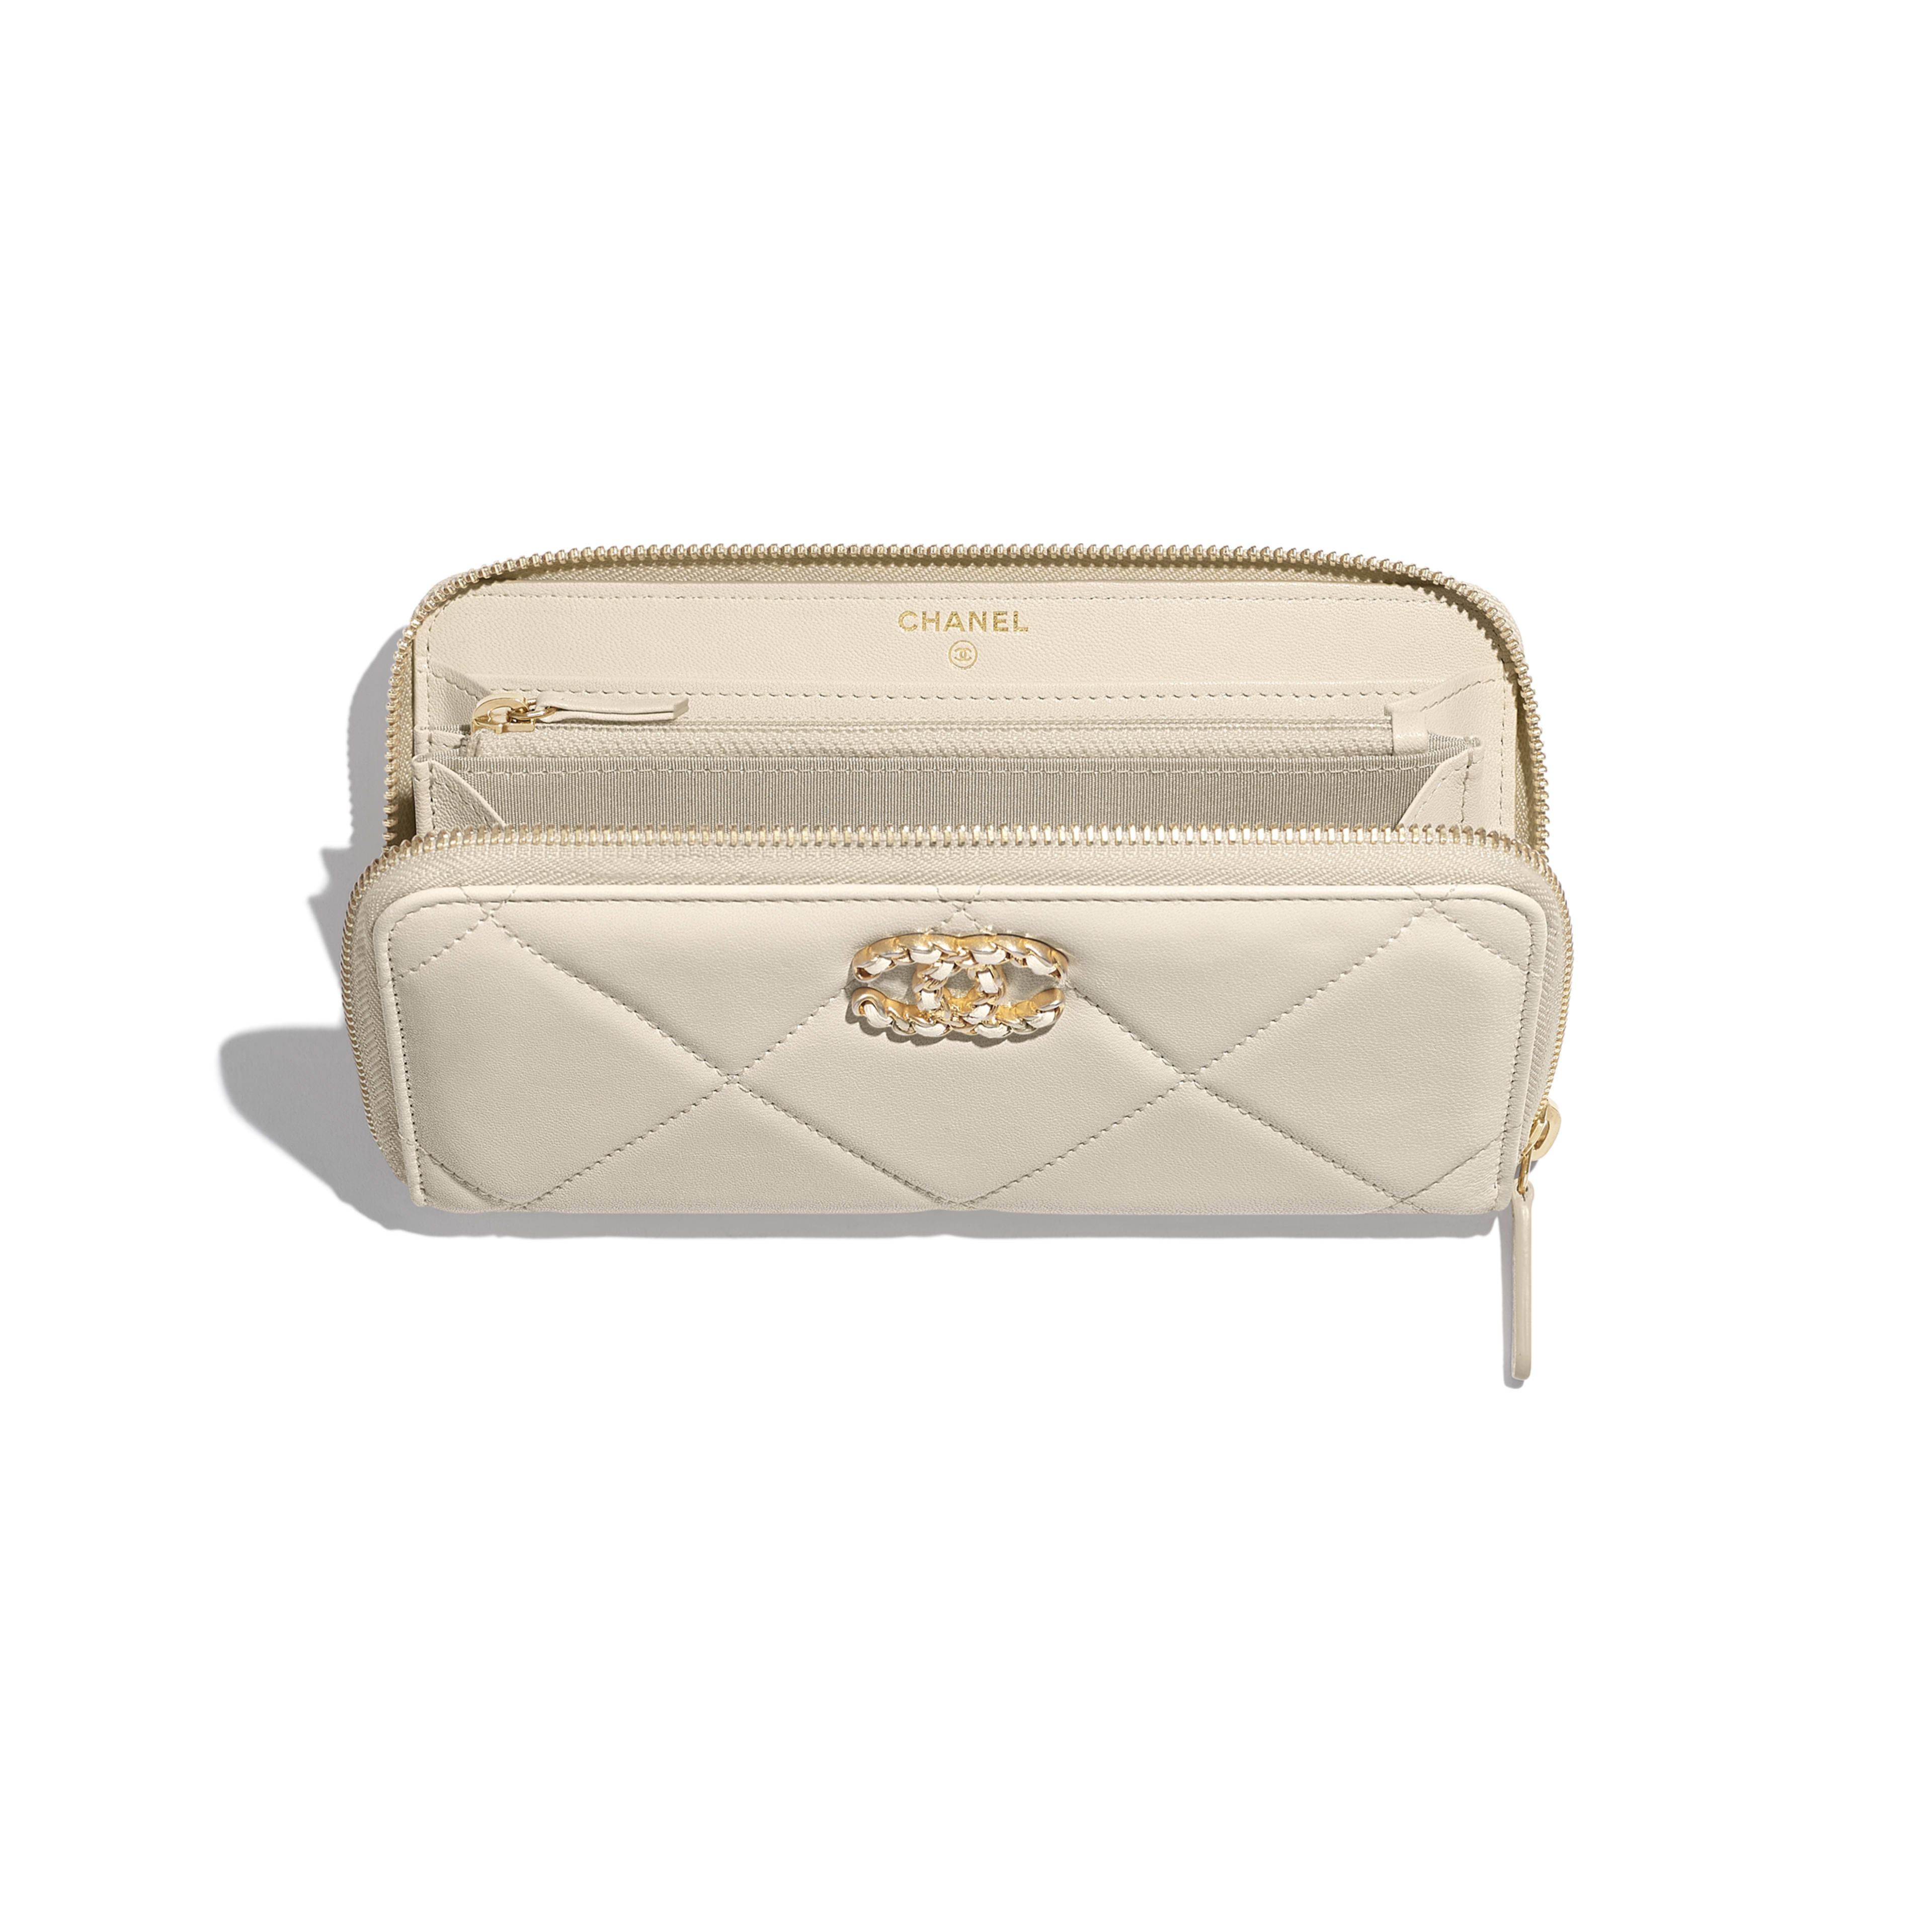 CHANEL 19 Long Zipped Wallet - Light Beige - Lambskin, Gold-Tone, Silver-Tone & Ruthenium-Finish Metal - Other view - see full sized version